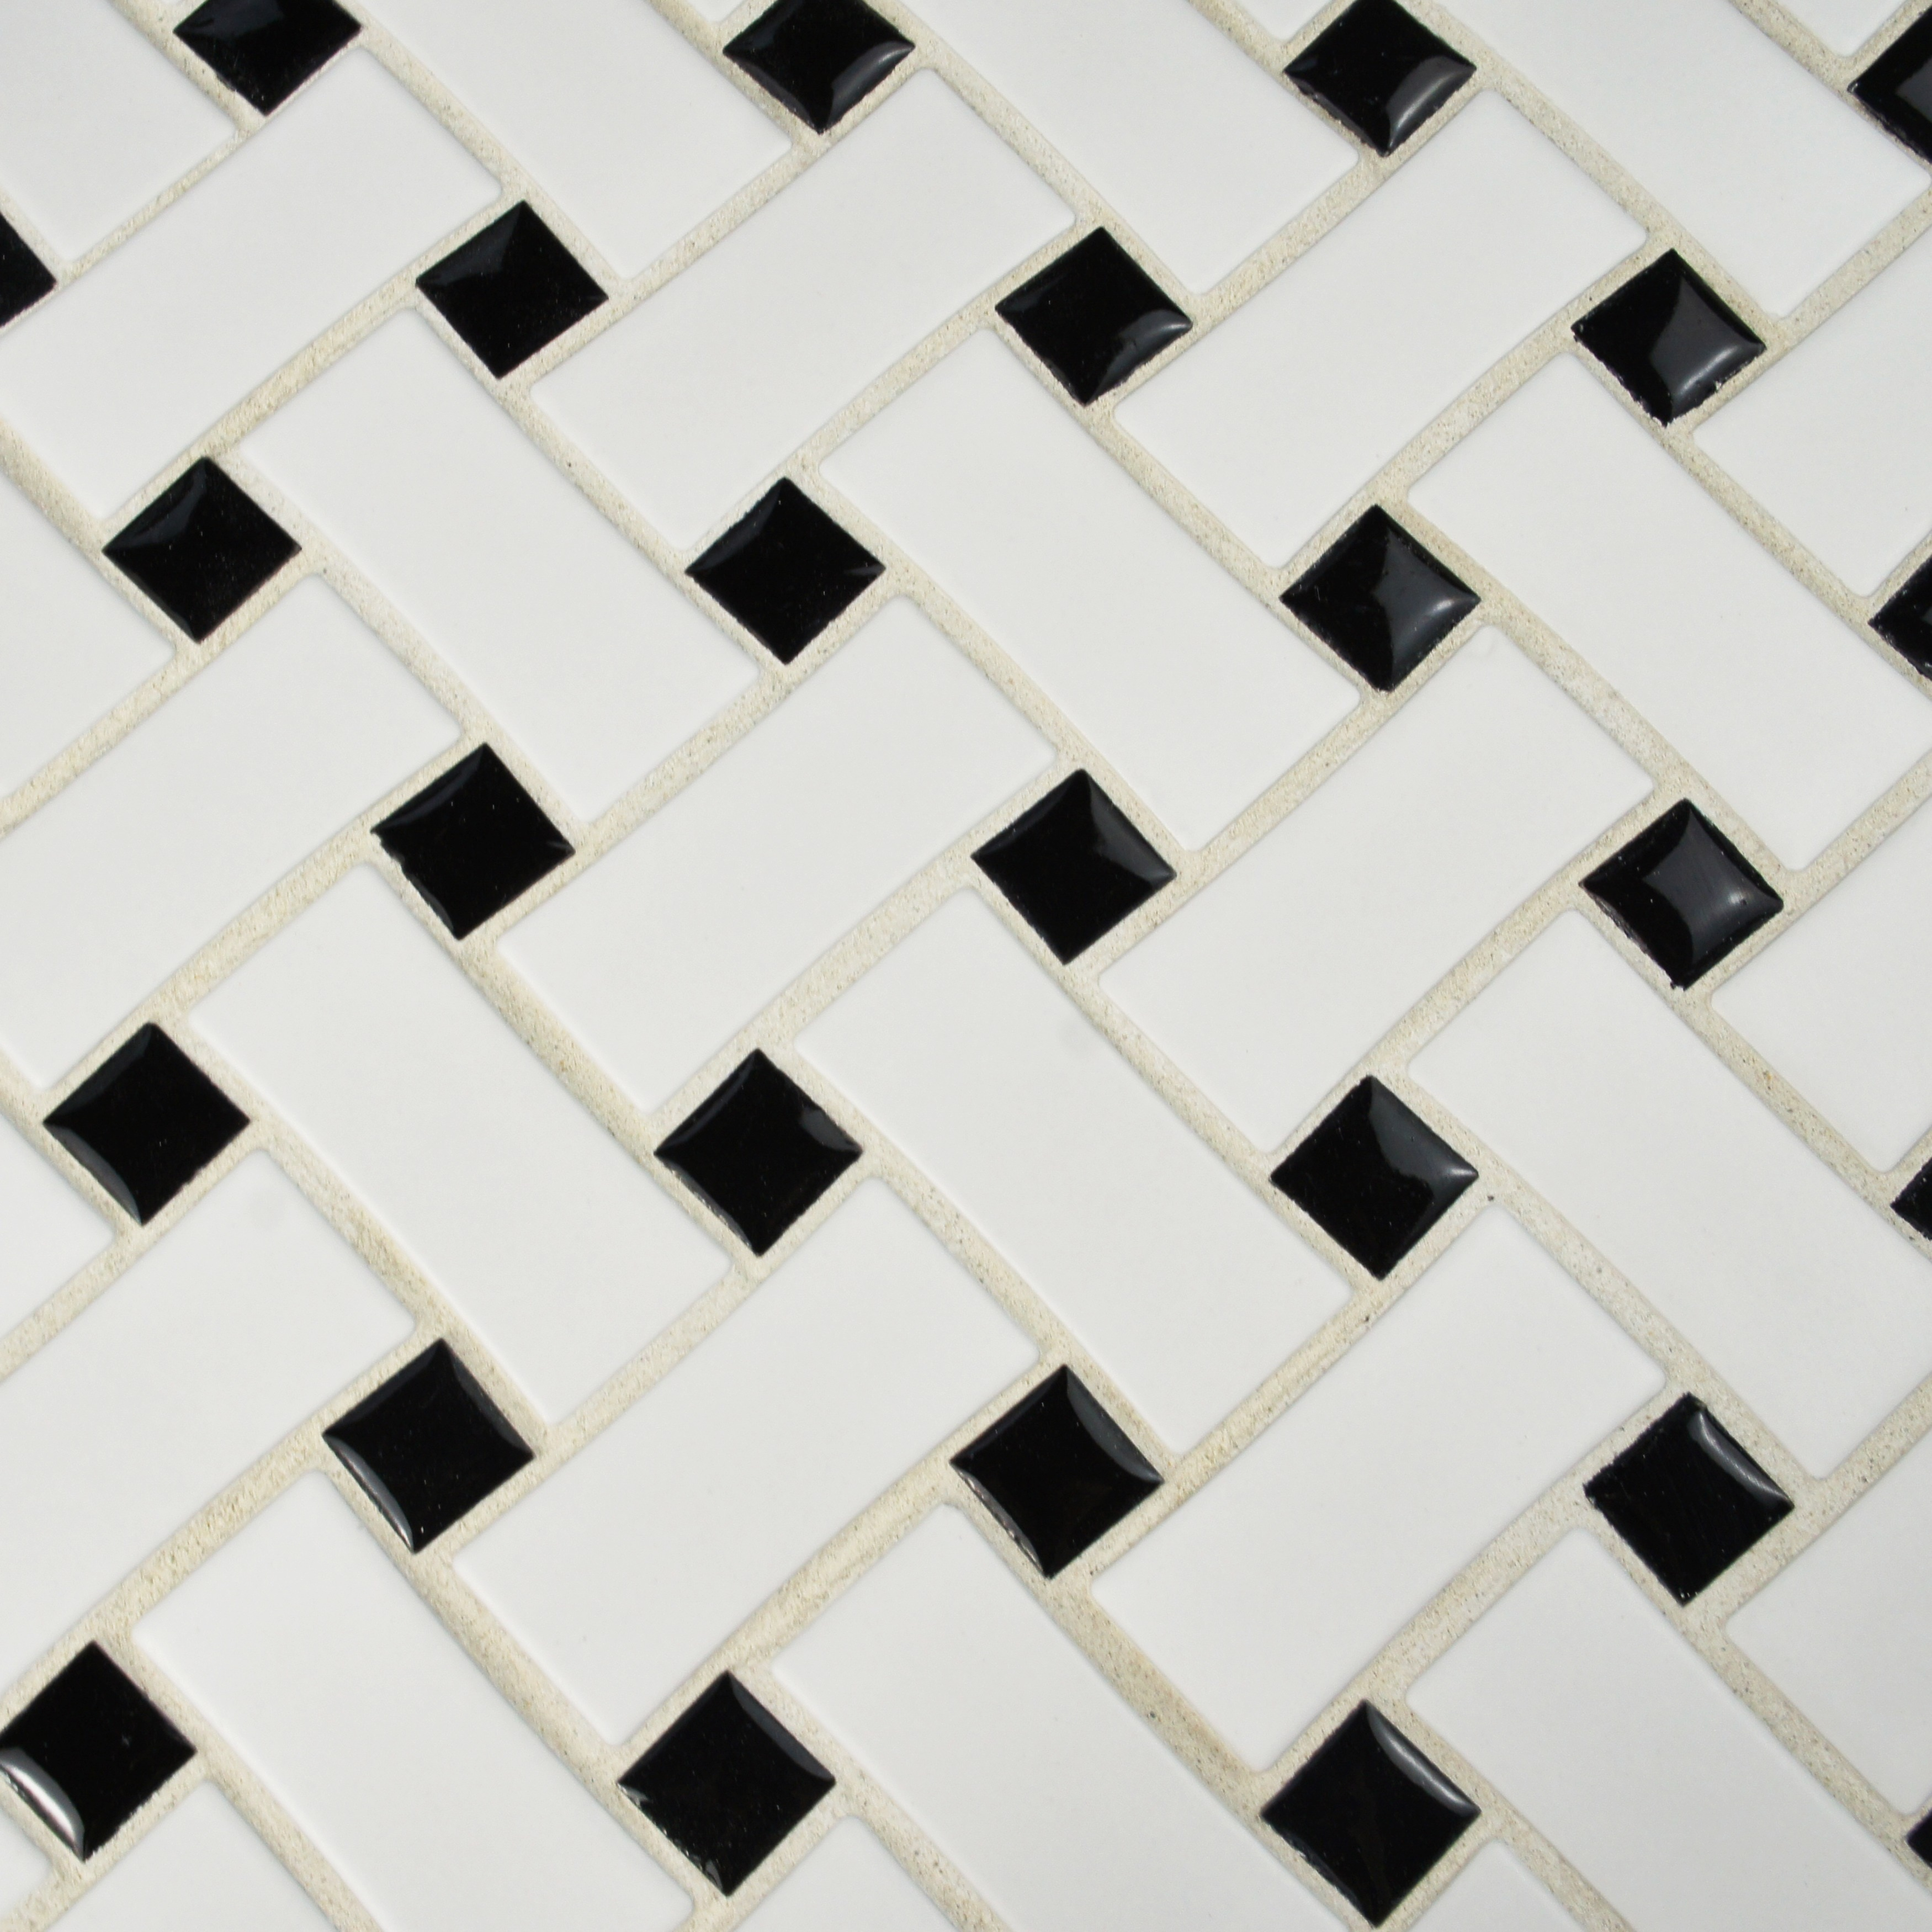 Somertile 105x105 inch victorian basket weave black and white somertile 105x105 inch victorian basket weave black and white porcelain mosaic floor and wall tile free shipping today overstock 16144816 dailygadgetfo Images